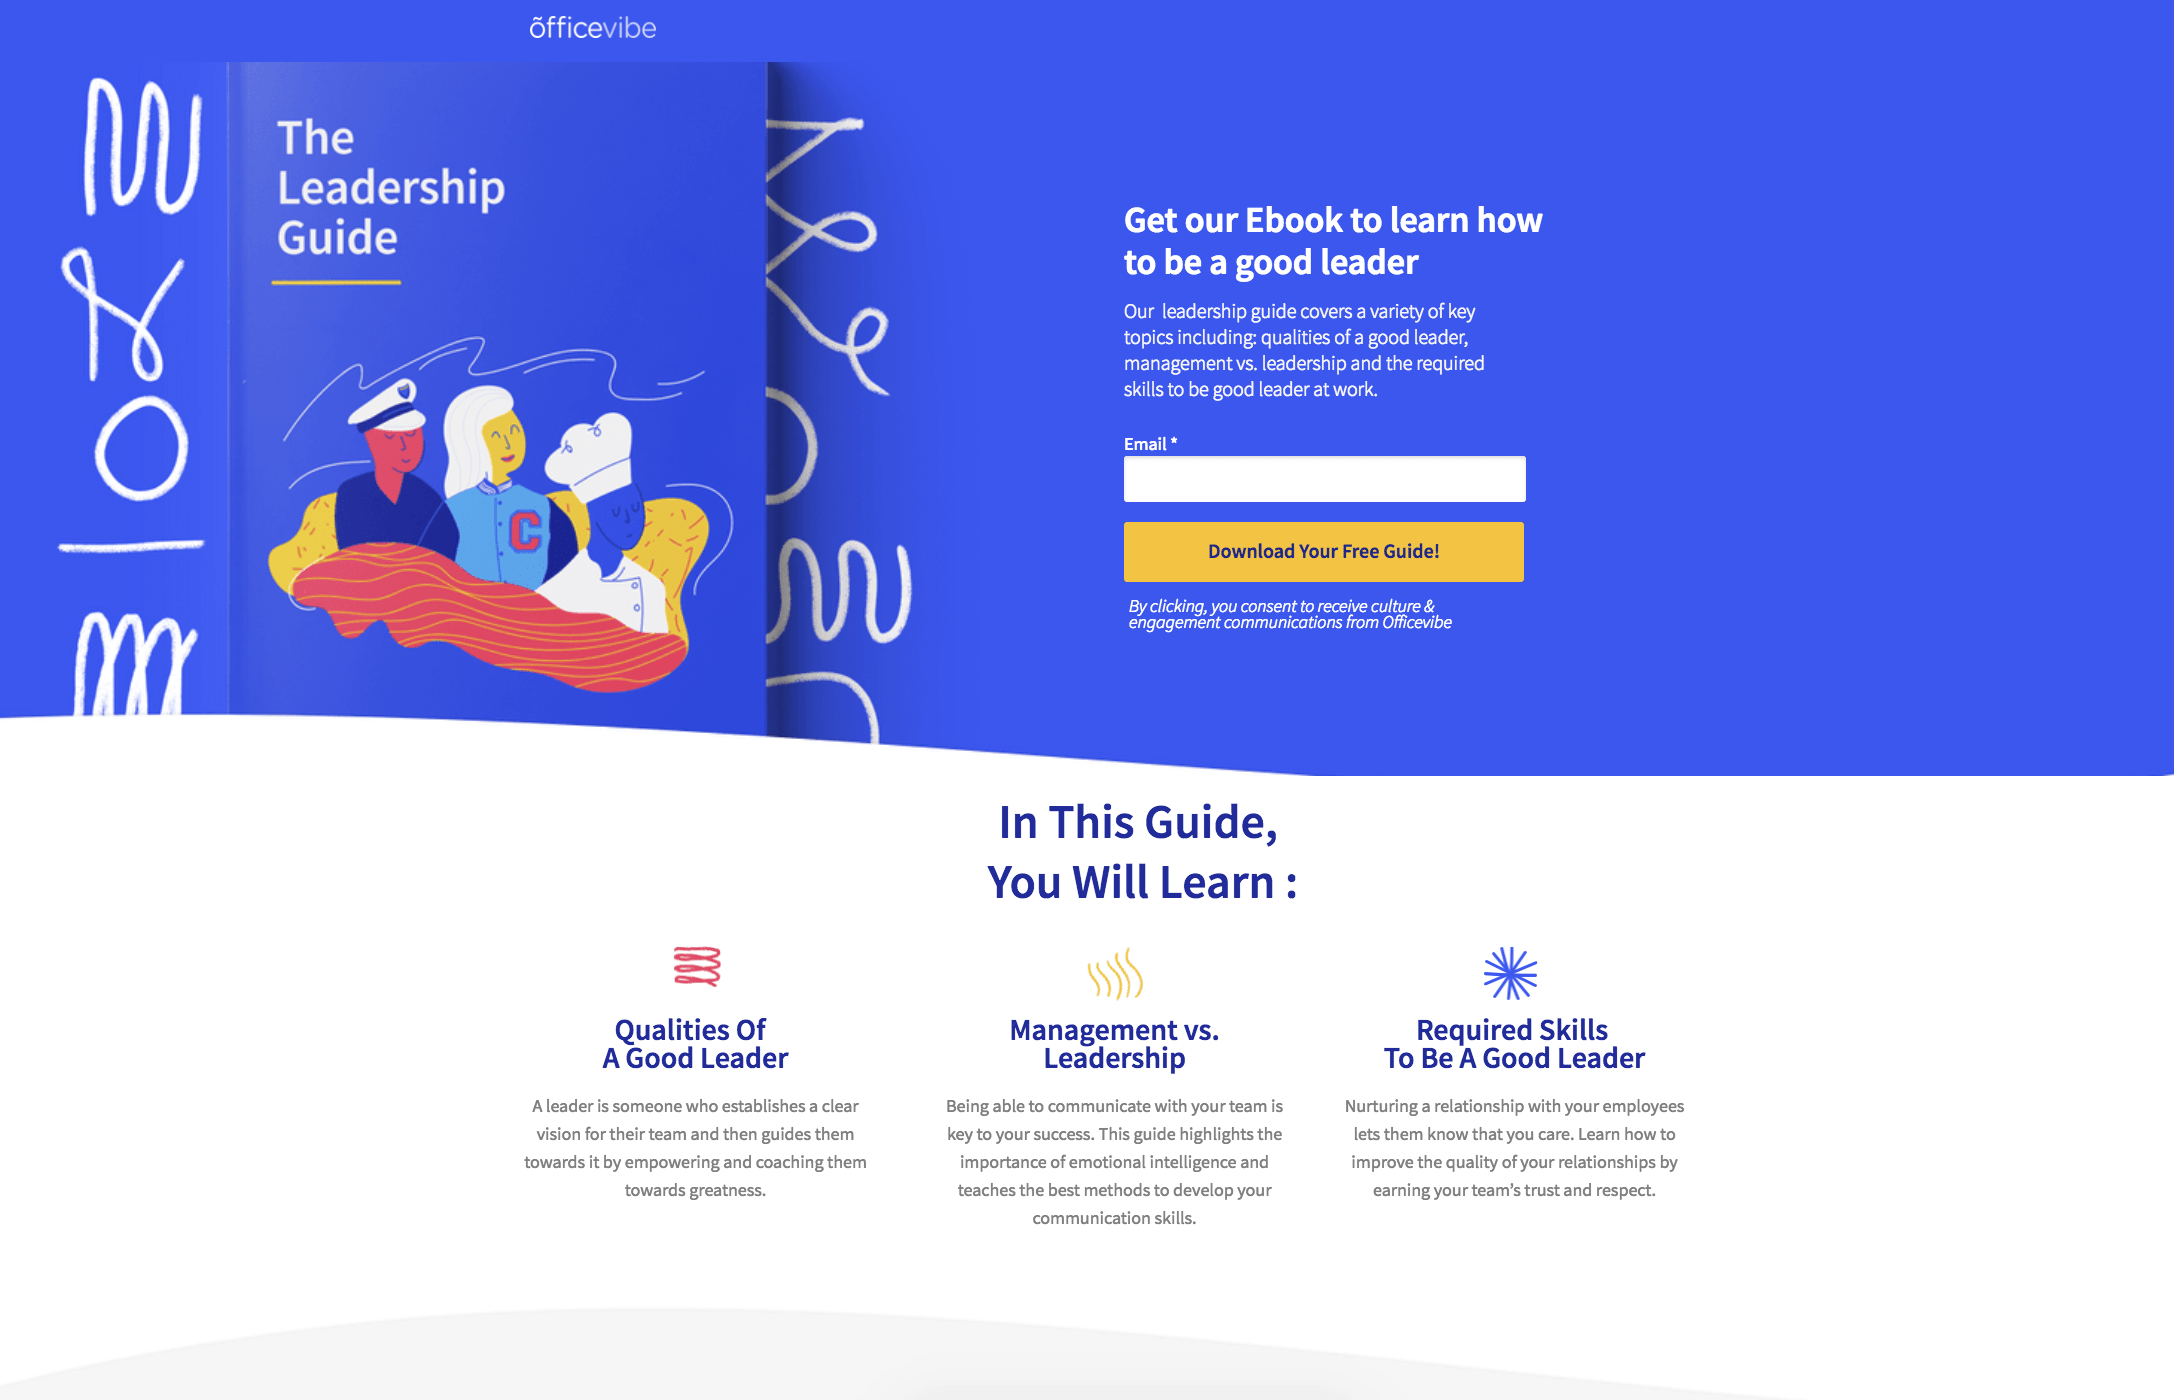 A regular squeeze page example from Officevibe